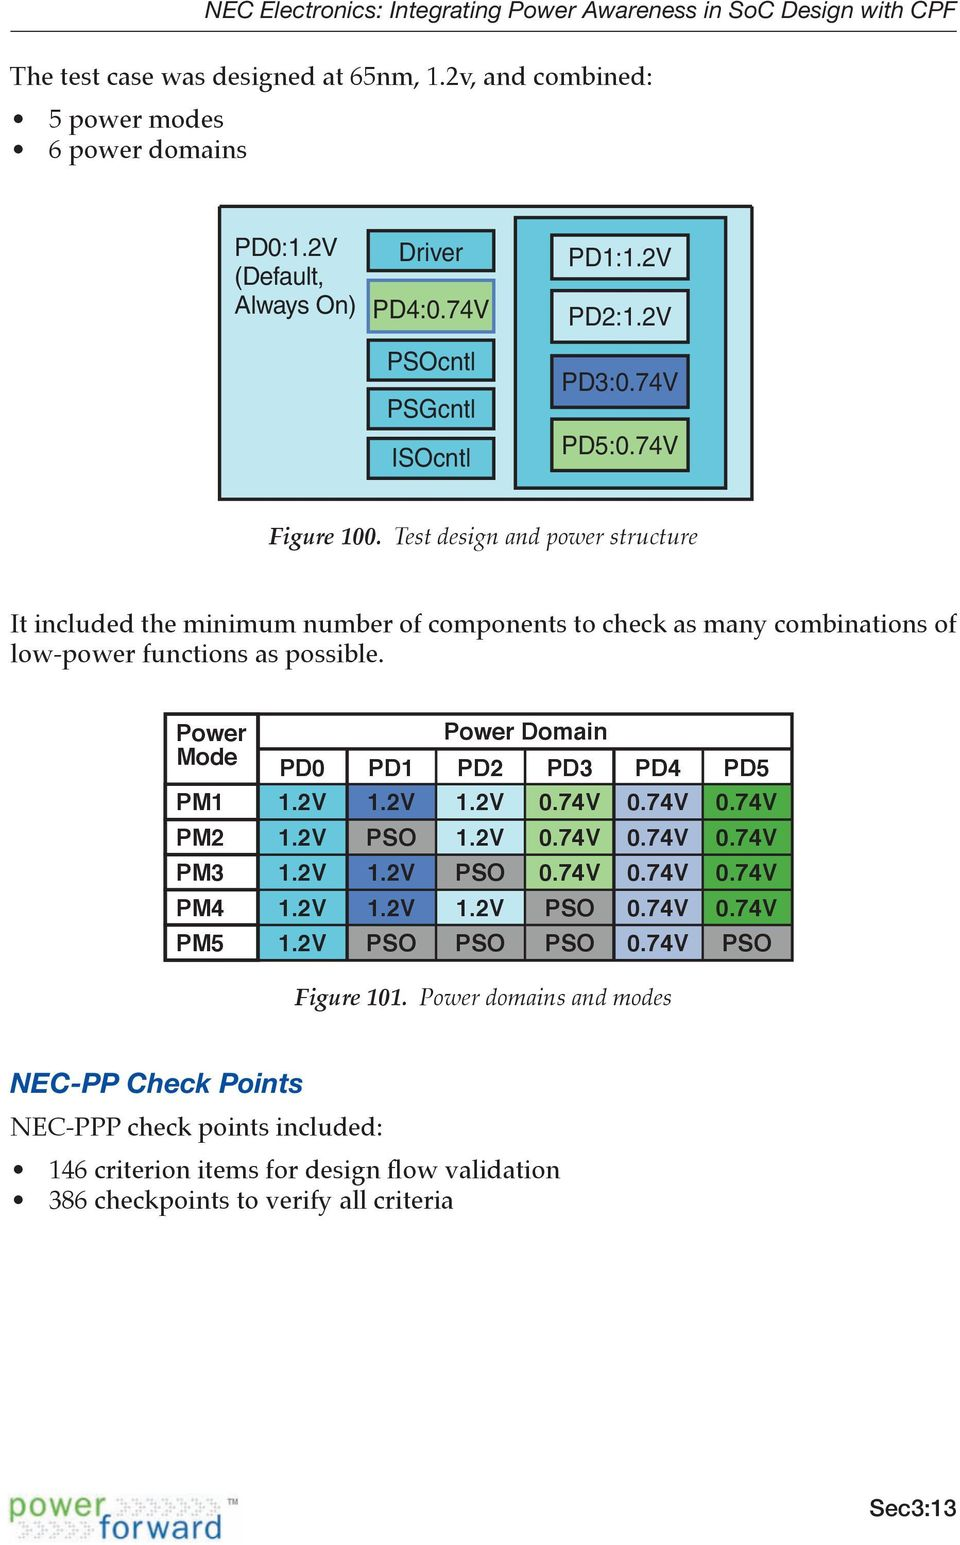 NEC Electronics: Integrating Power Awareness in SoC Design with CPF